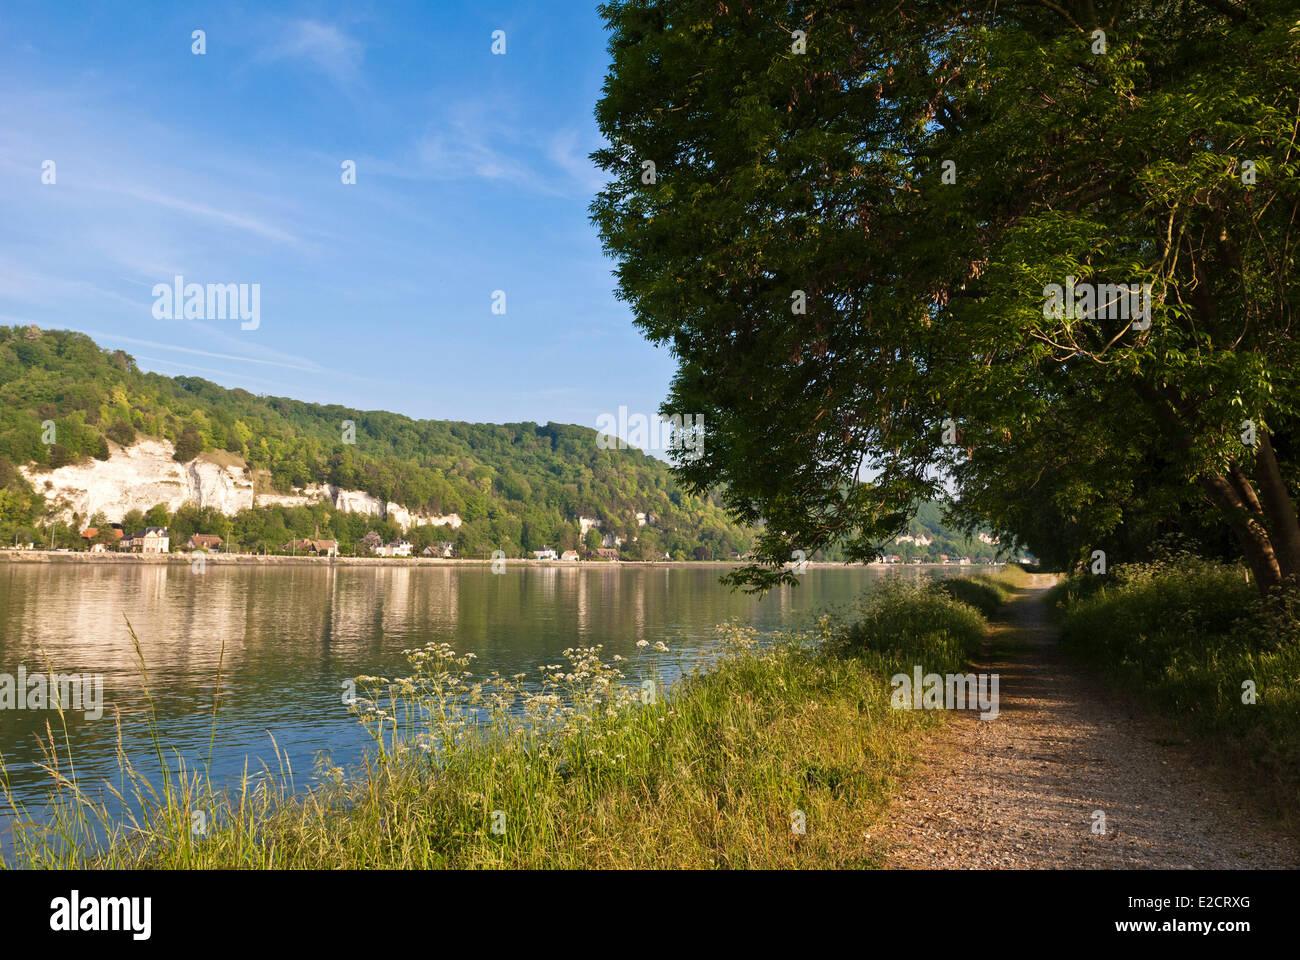 France Seine Maritime towpath near the Seine and La Bouille - Stock Image